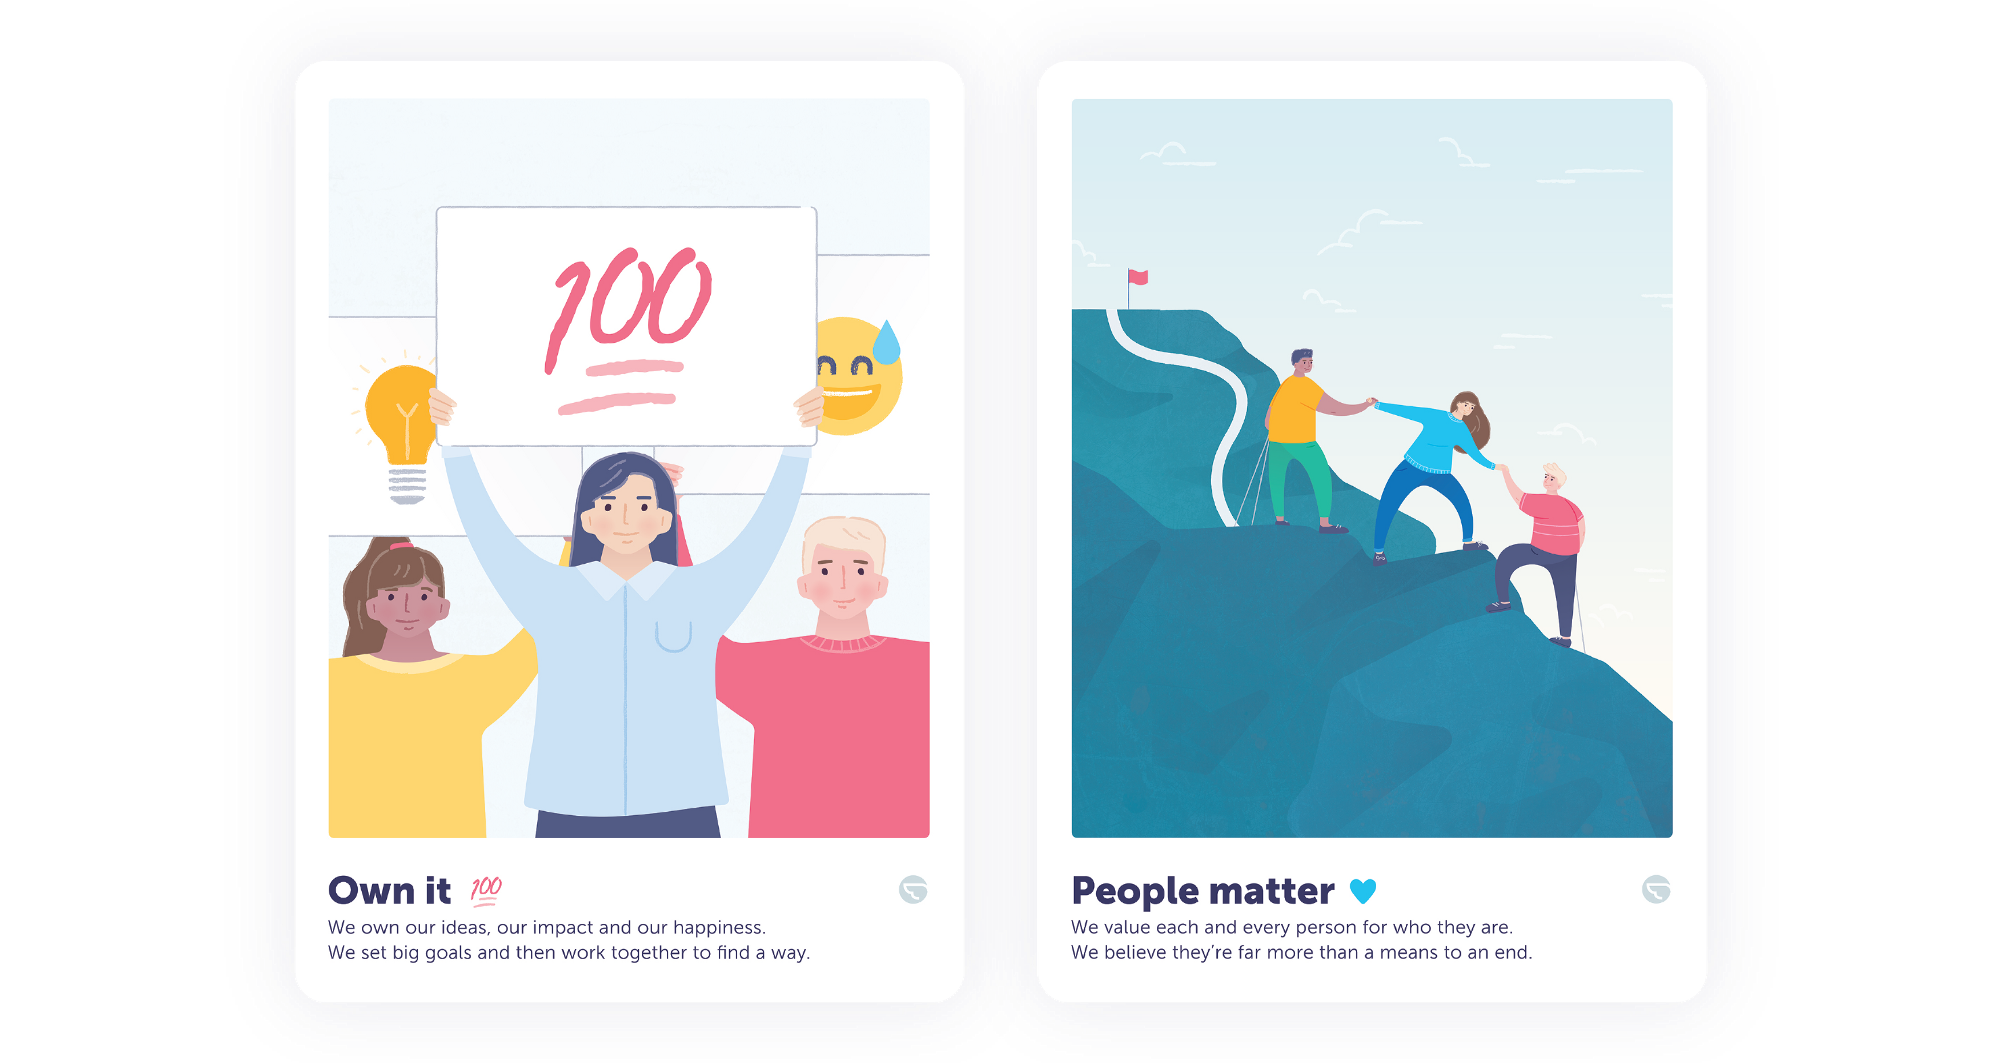 Bring your brand to life through illustration - The Airtasker Tribe